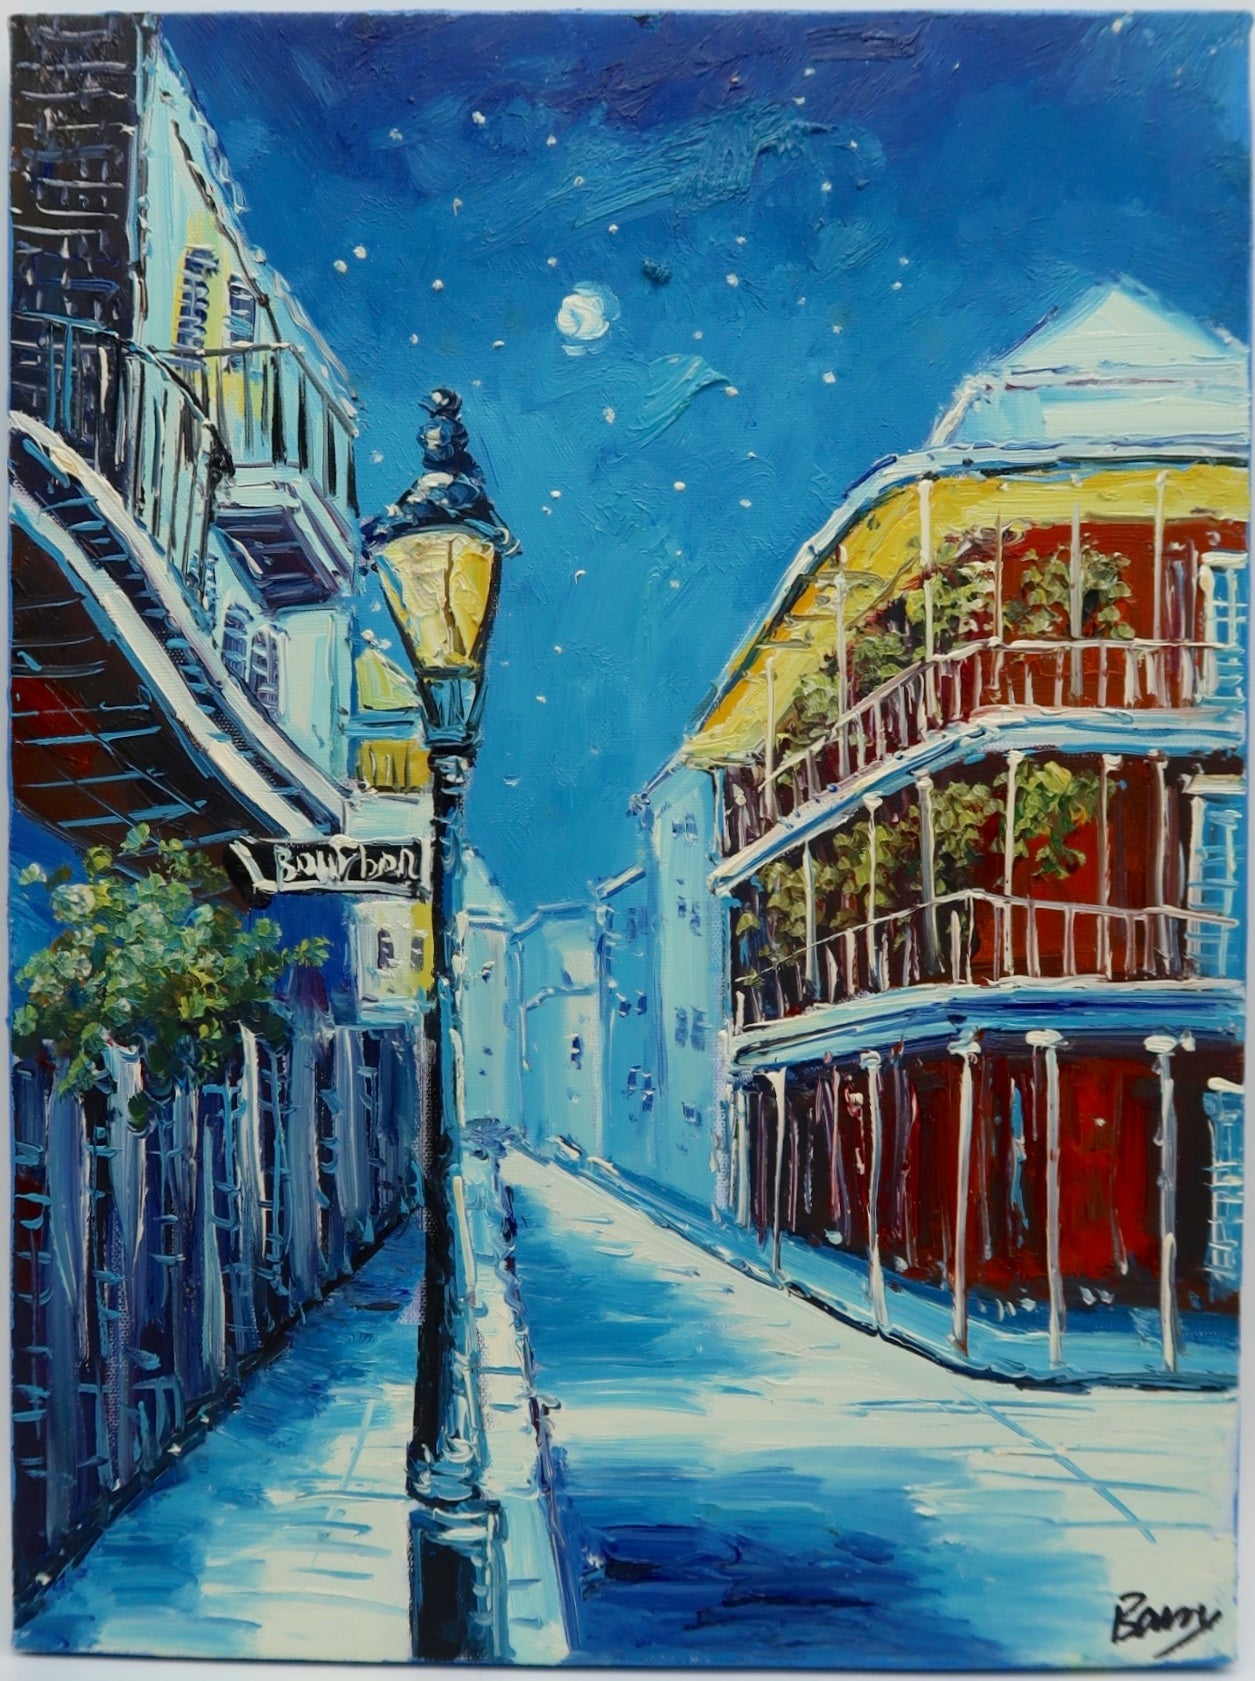 """Nola by Night"" by Barry Ma"